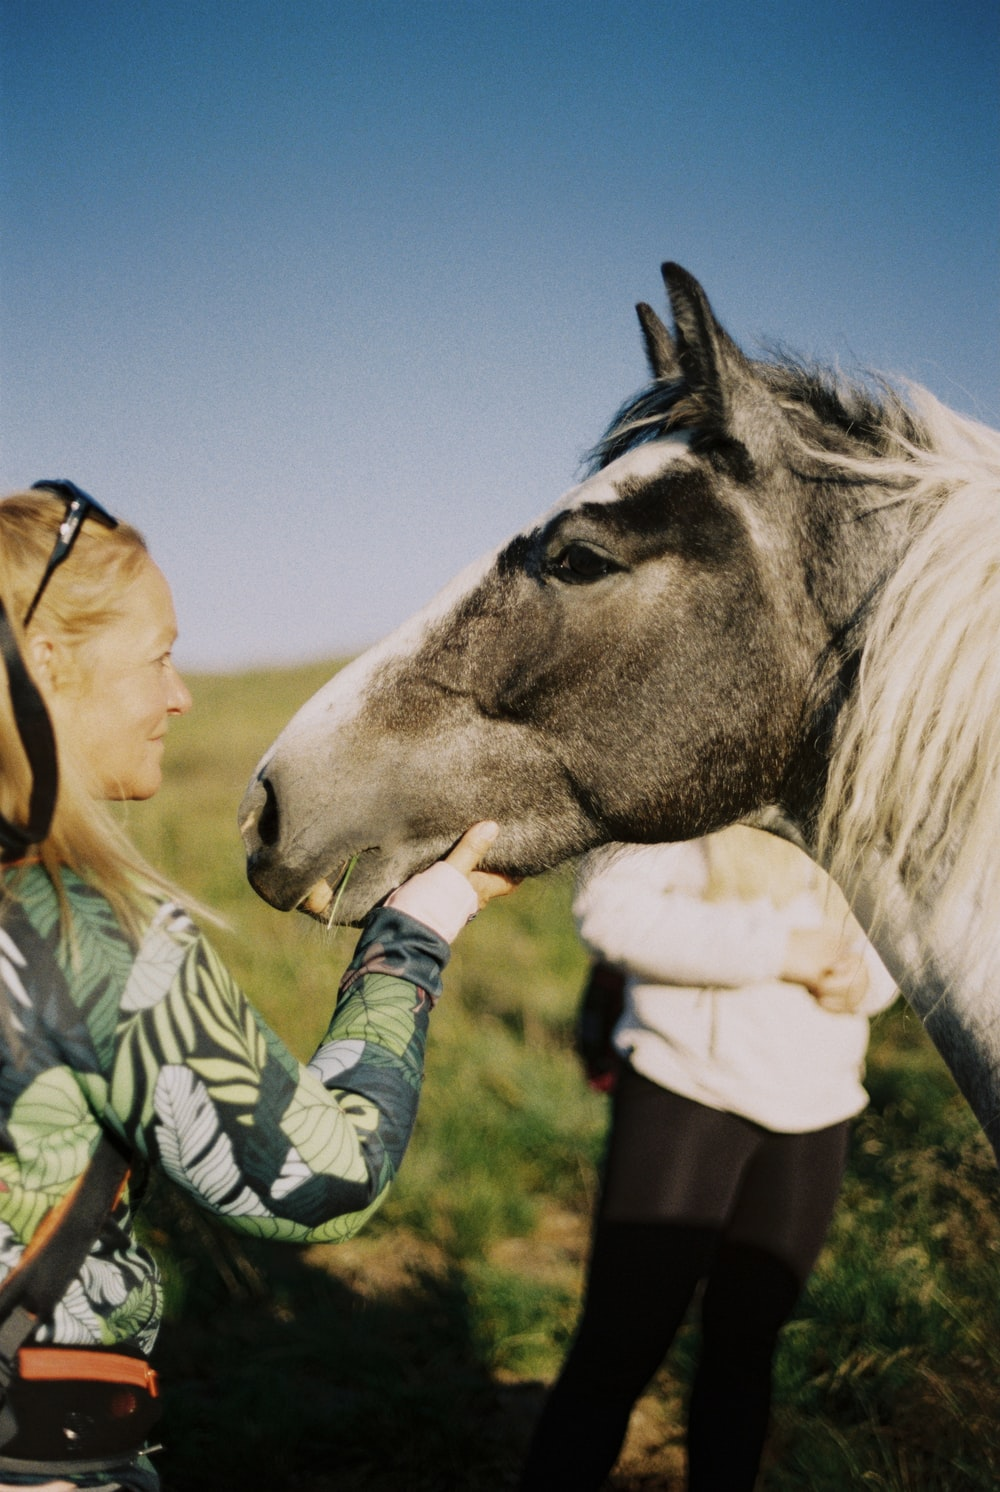 woman in green and white long sleeve shirt standing beside white horse during daytime